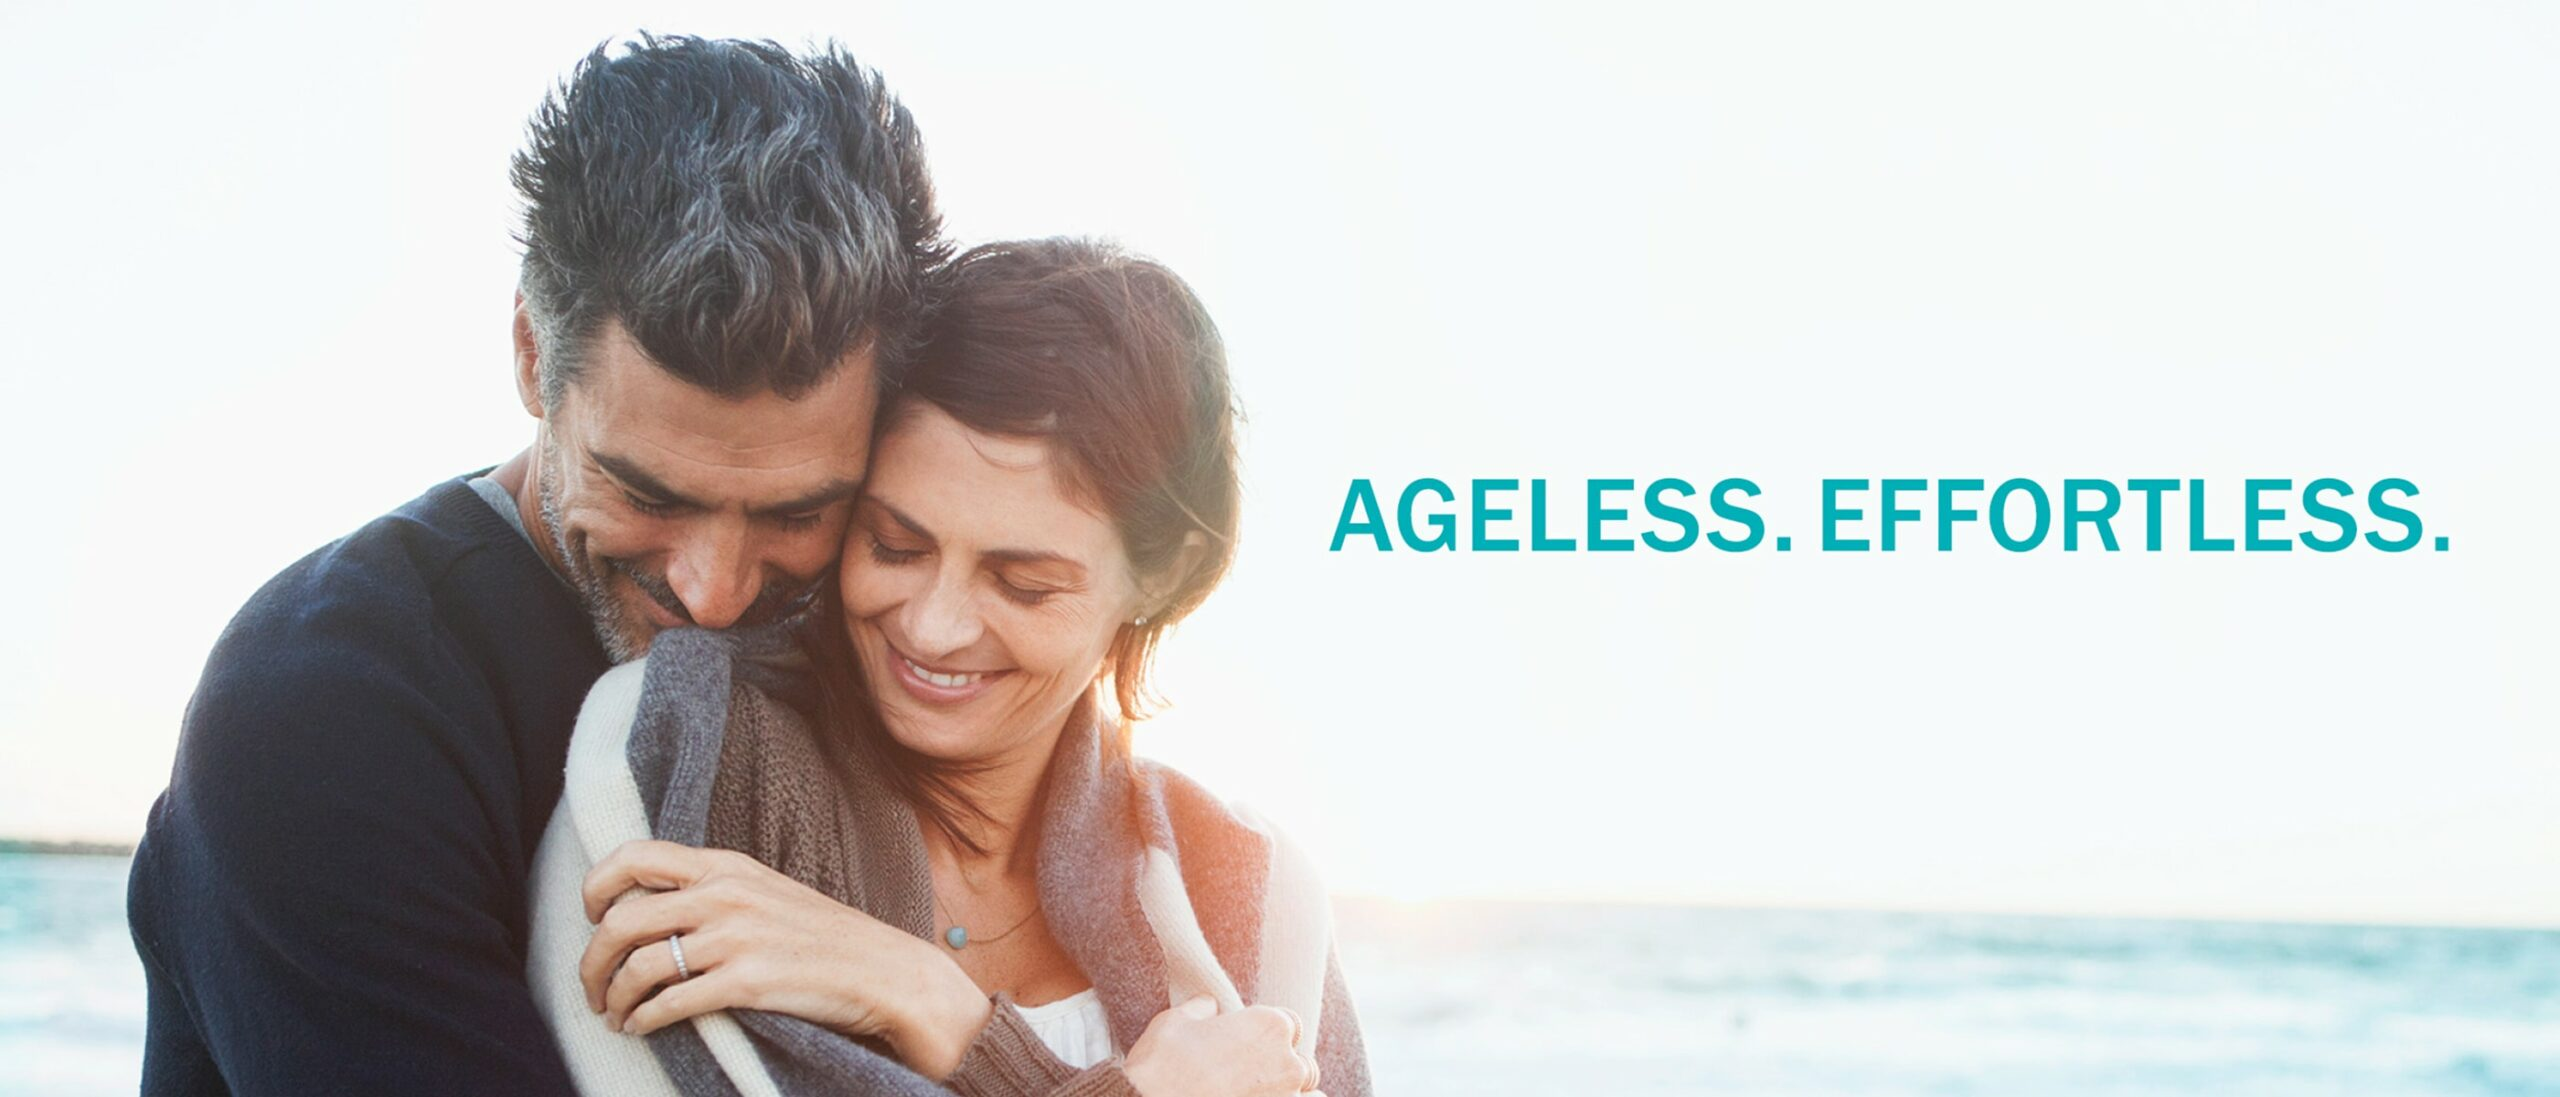 Renew Youth Photo of Man and Woman with Tagline: Ageless. Effortless.